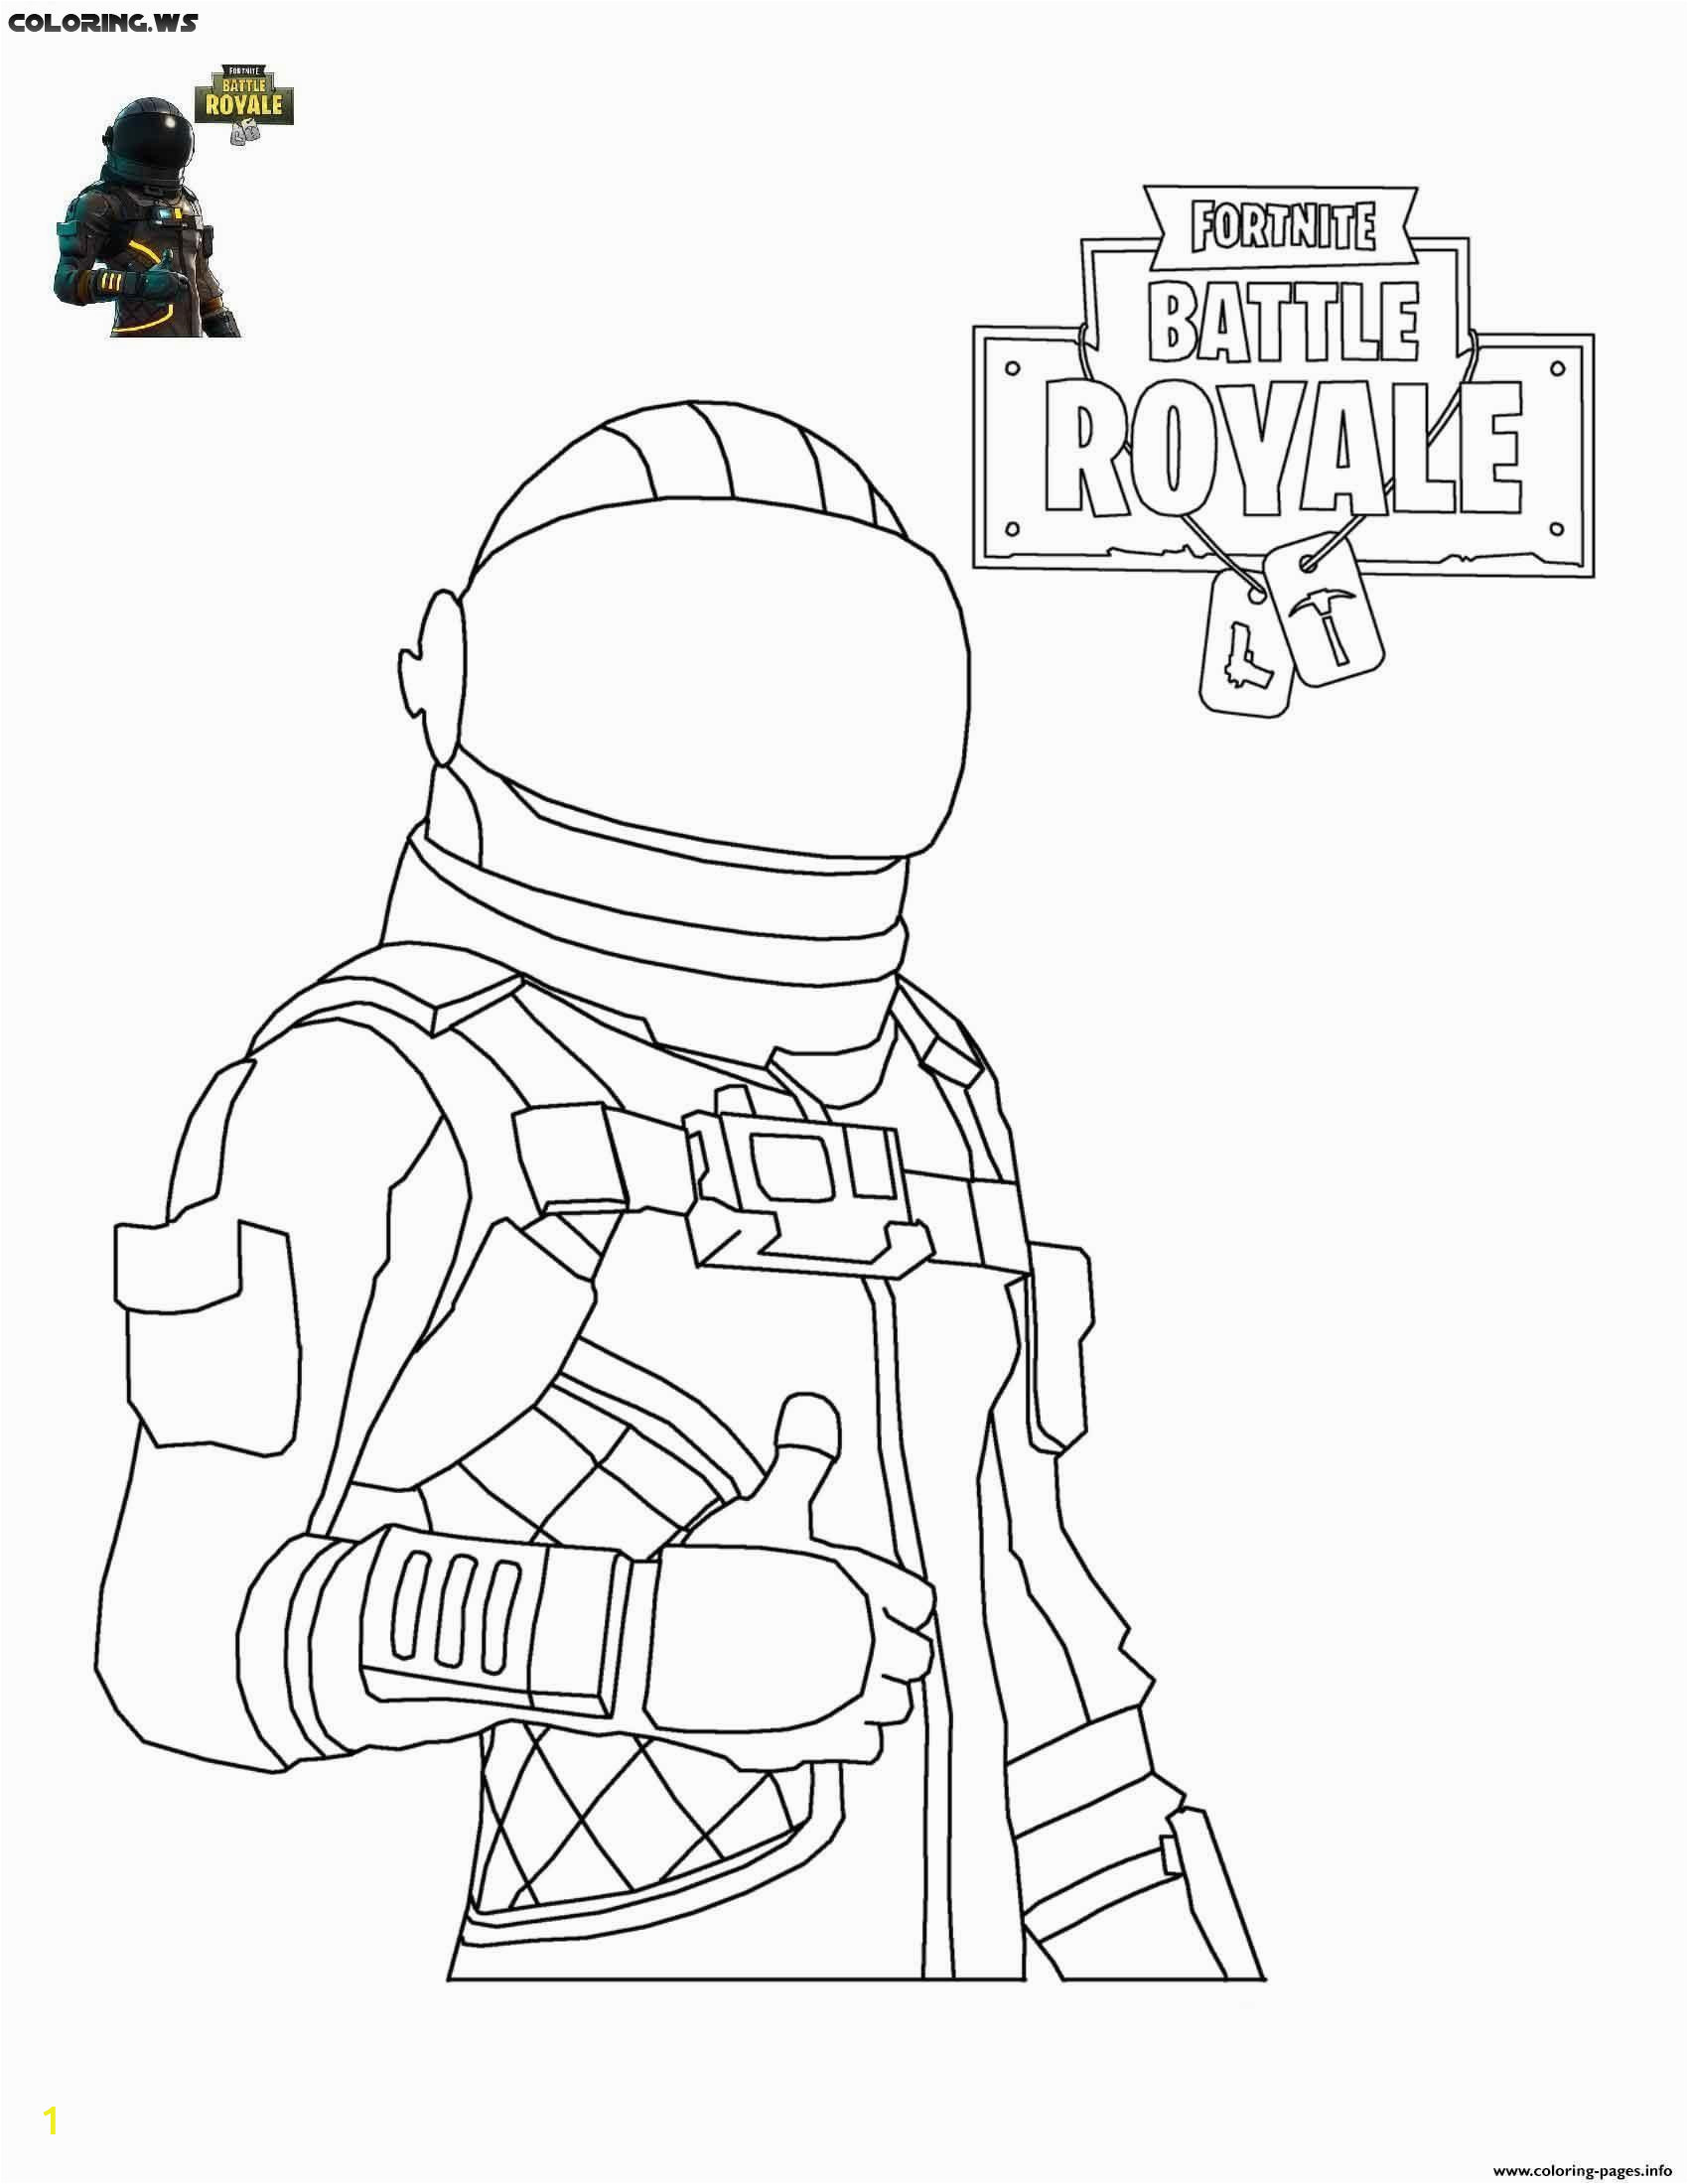 Fortnite Thanos Coloring Pages fortnite Dark Voyager Coloring Pages Darkvoyager fortnite